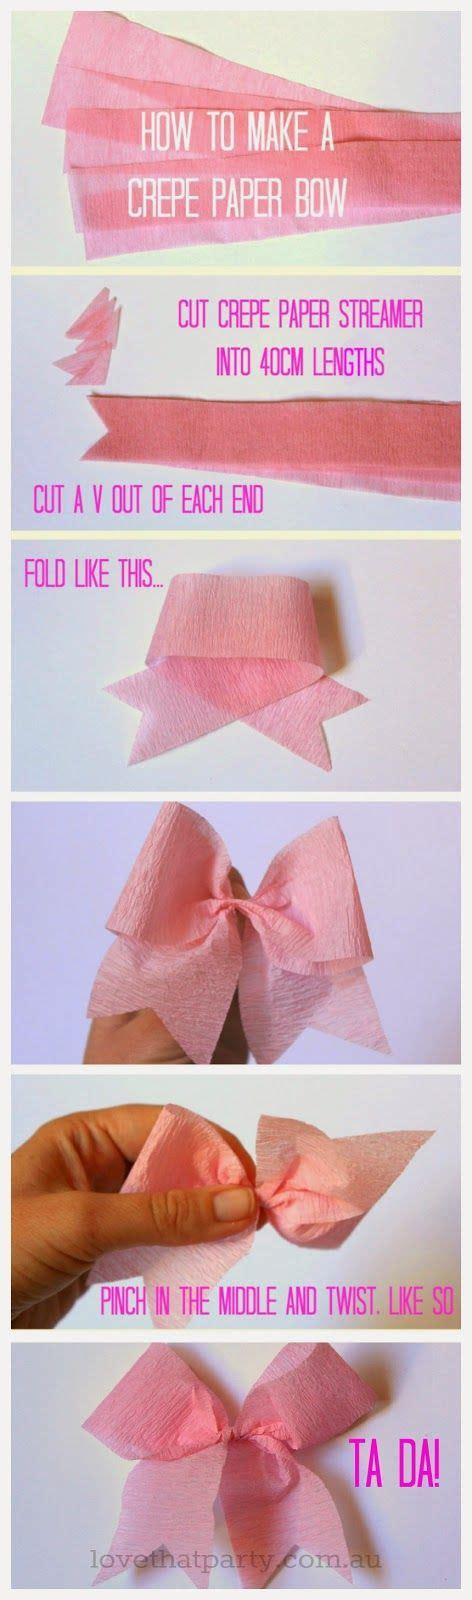 How To Make Crepe Paper Decorations - best 20 crepe paper decorations ideas on